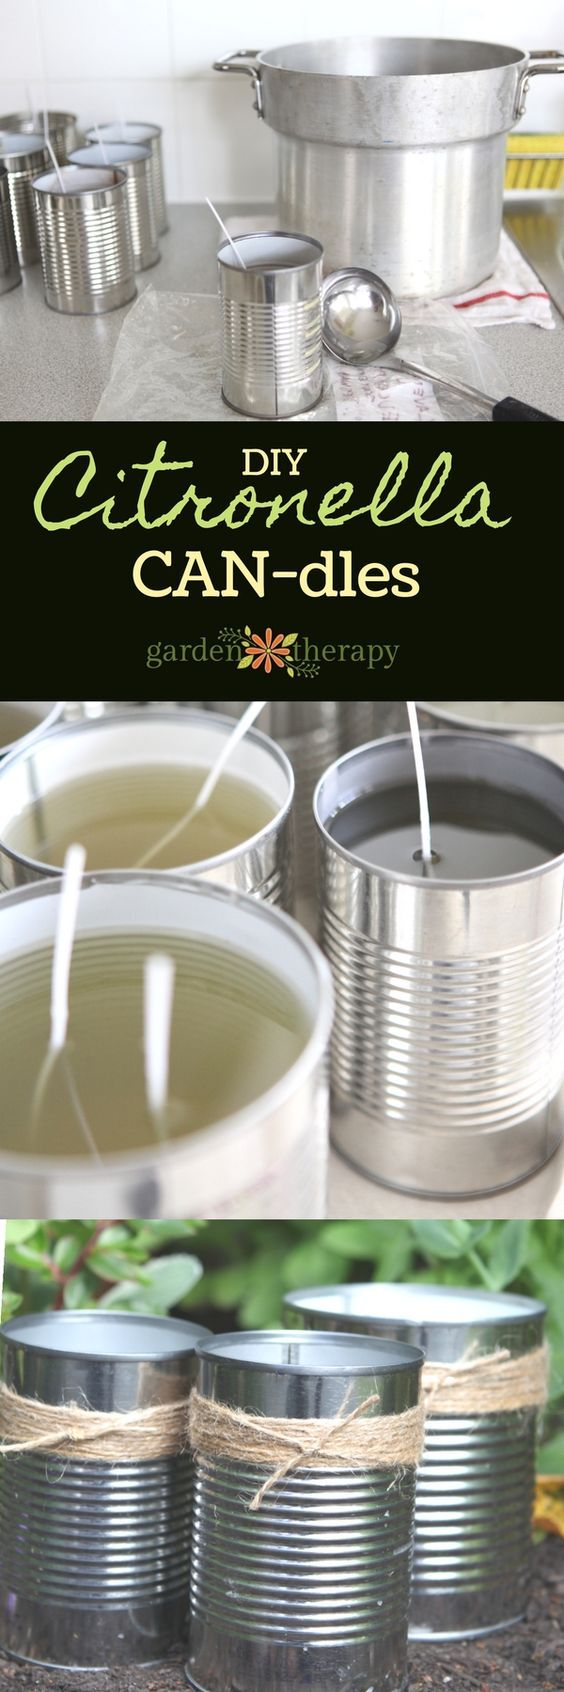 How to Make Citronella Candles Citronella candles, Diy